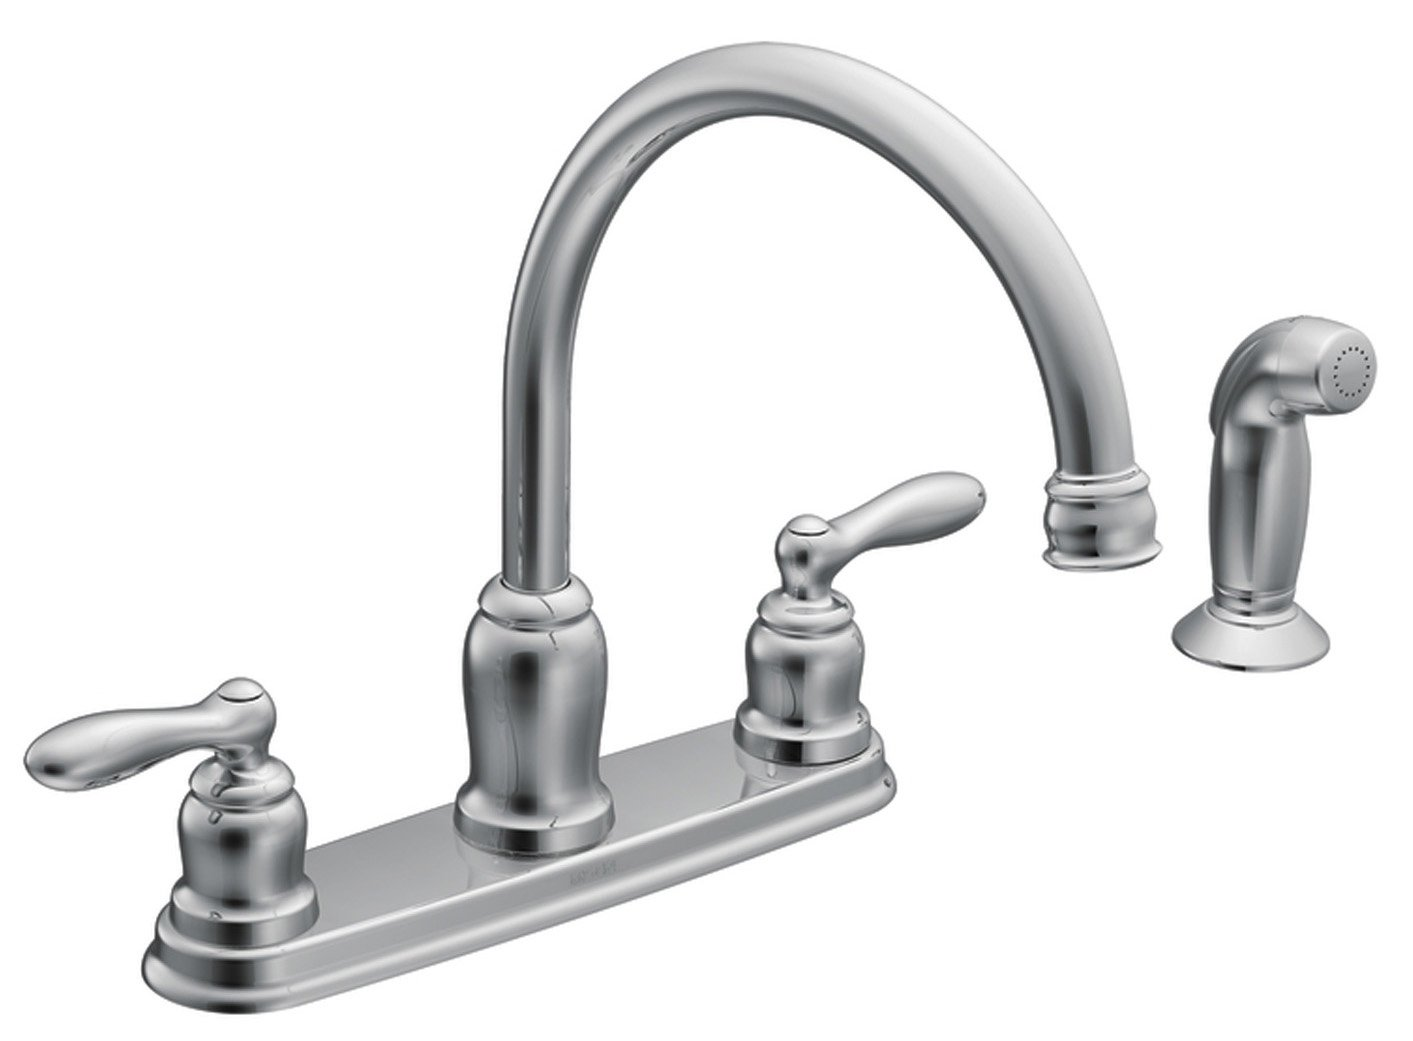 Lovely Moen CA87888 High Arc Kitchen Faucet From The Caldwell Collection, Chrome    Touch On Kitchen Sink Faucets   Amazon.com